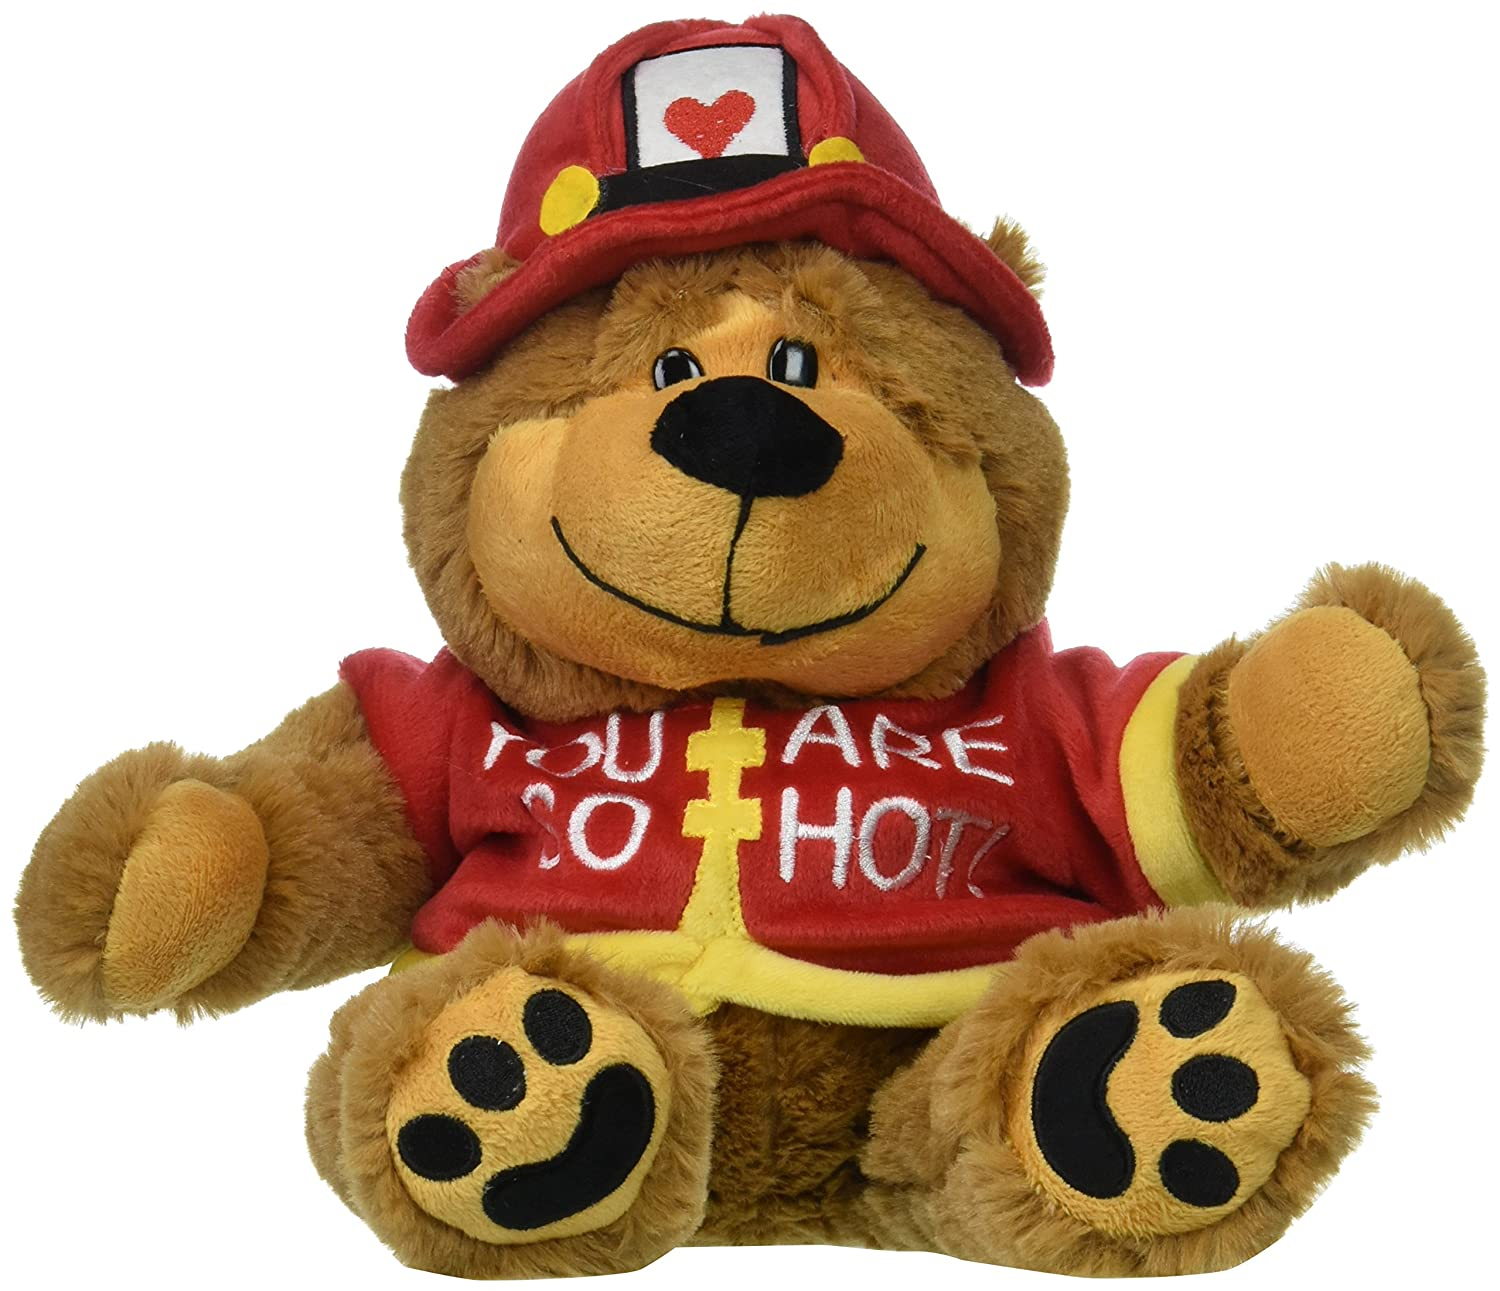 c387bae2dba Amazon.com  Burton and Burton You are So Hot Fireman Bear Plush Toy ...